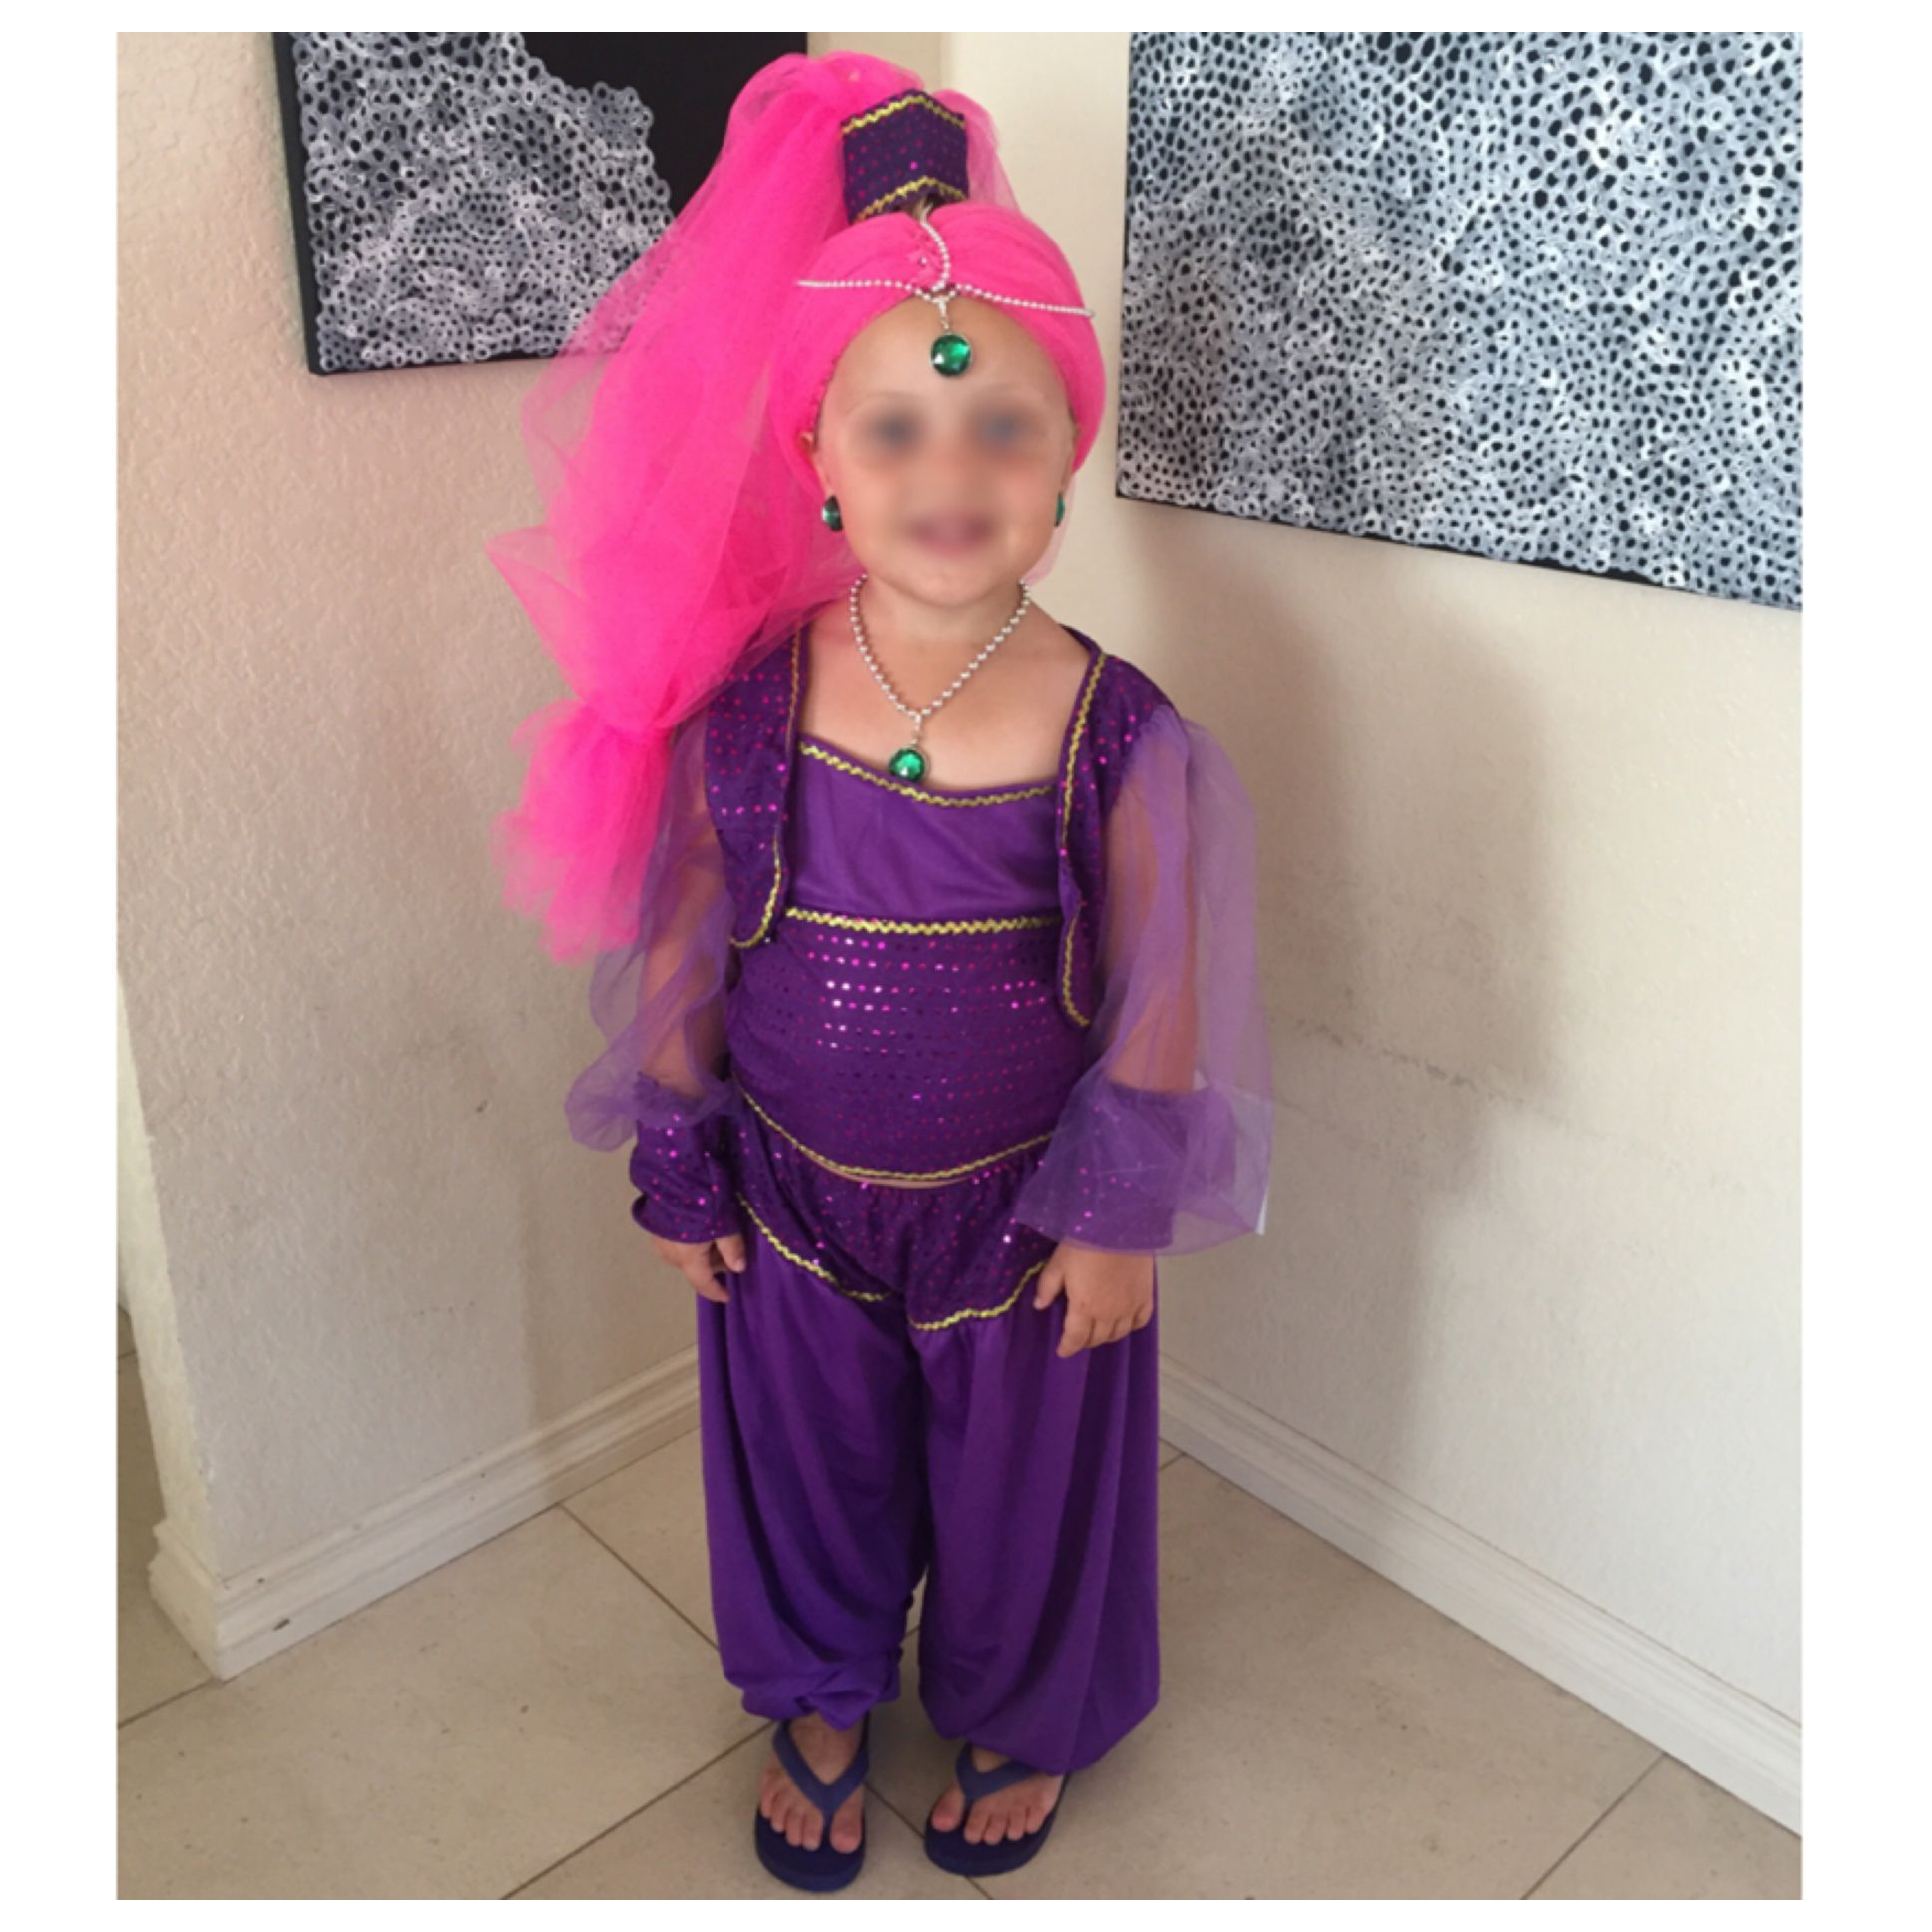 shimmer and shine costume and wig diy homemade costume tulle wig bead trim jewelry final product